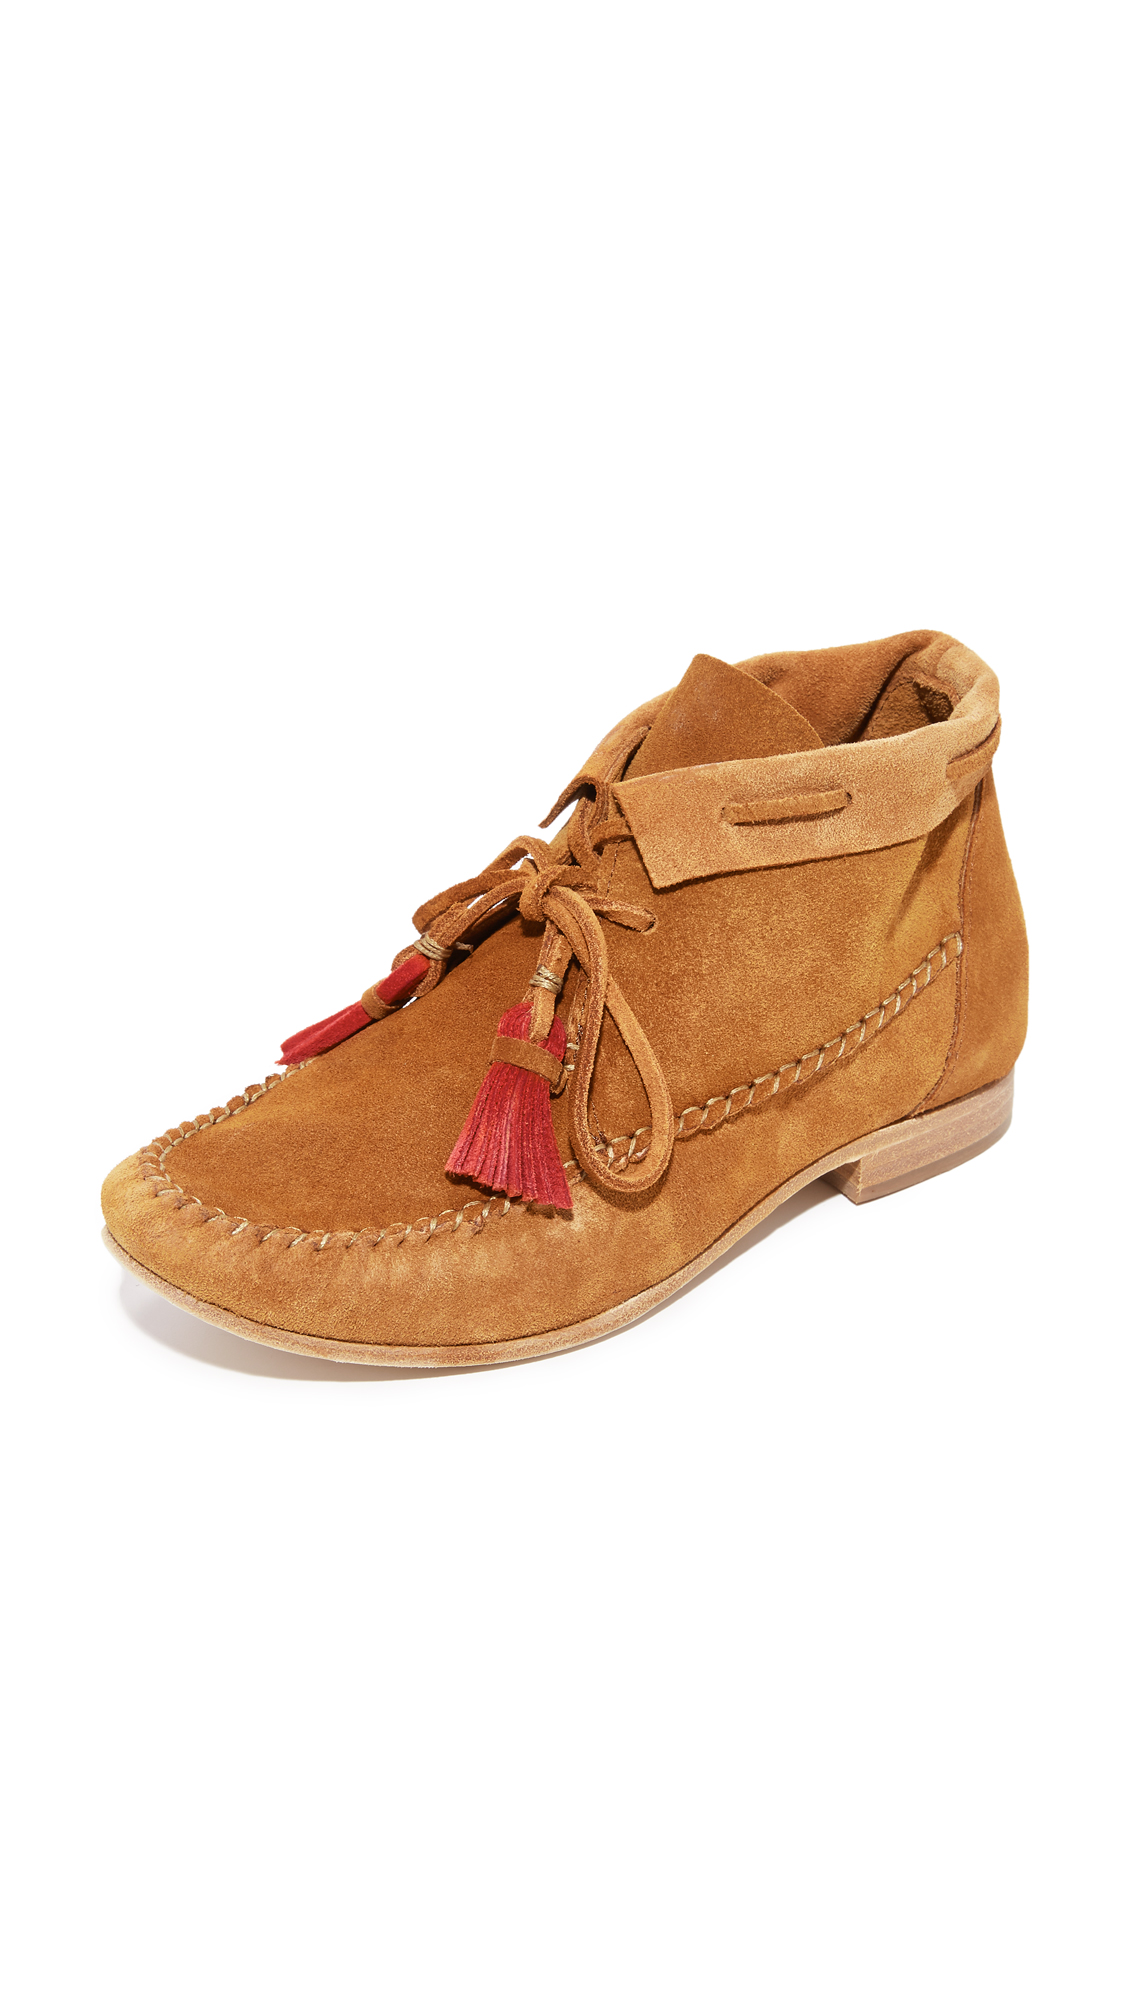 Soludos Moccasin Booties - Saddle